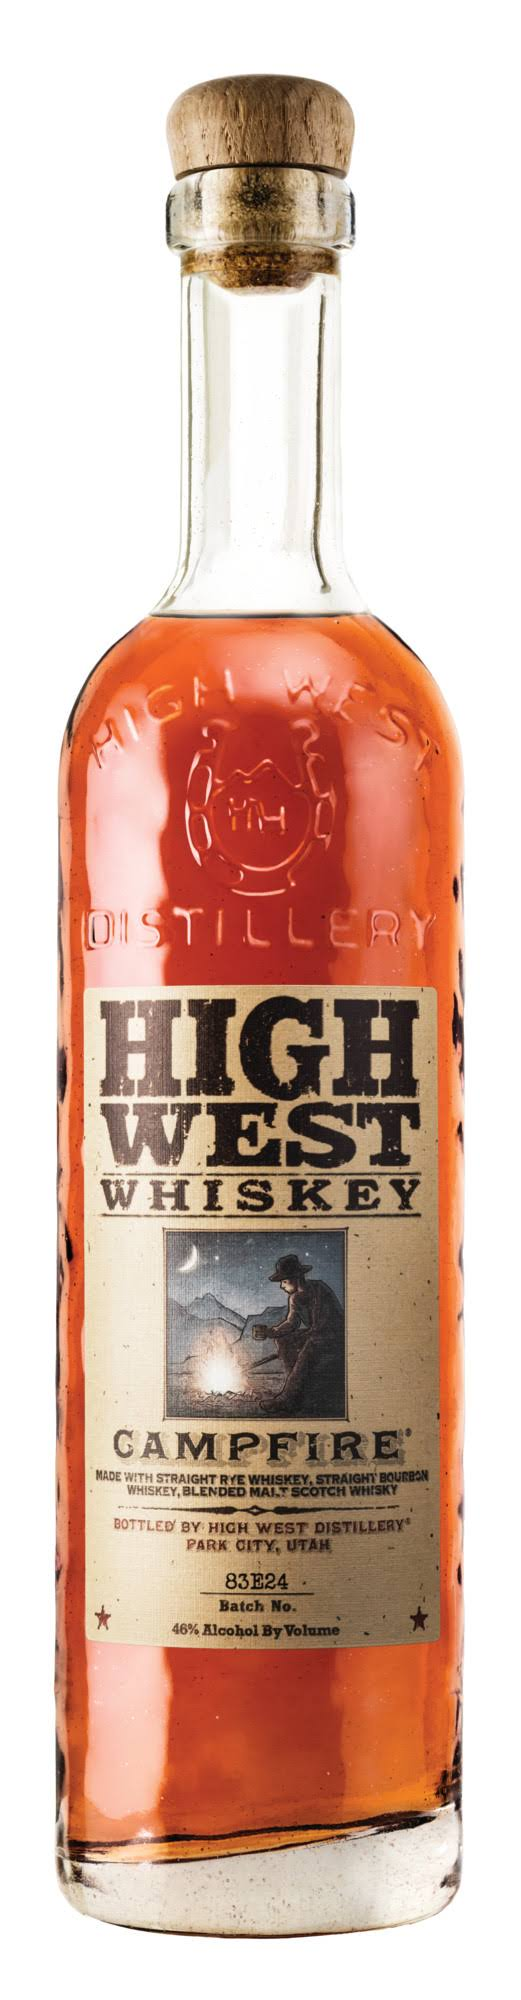 High West Whiskey Campfire - 750 ml bottle